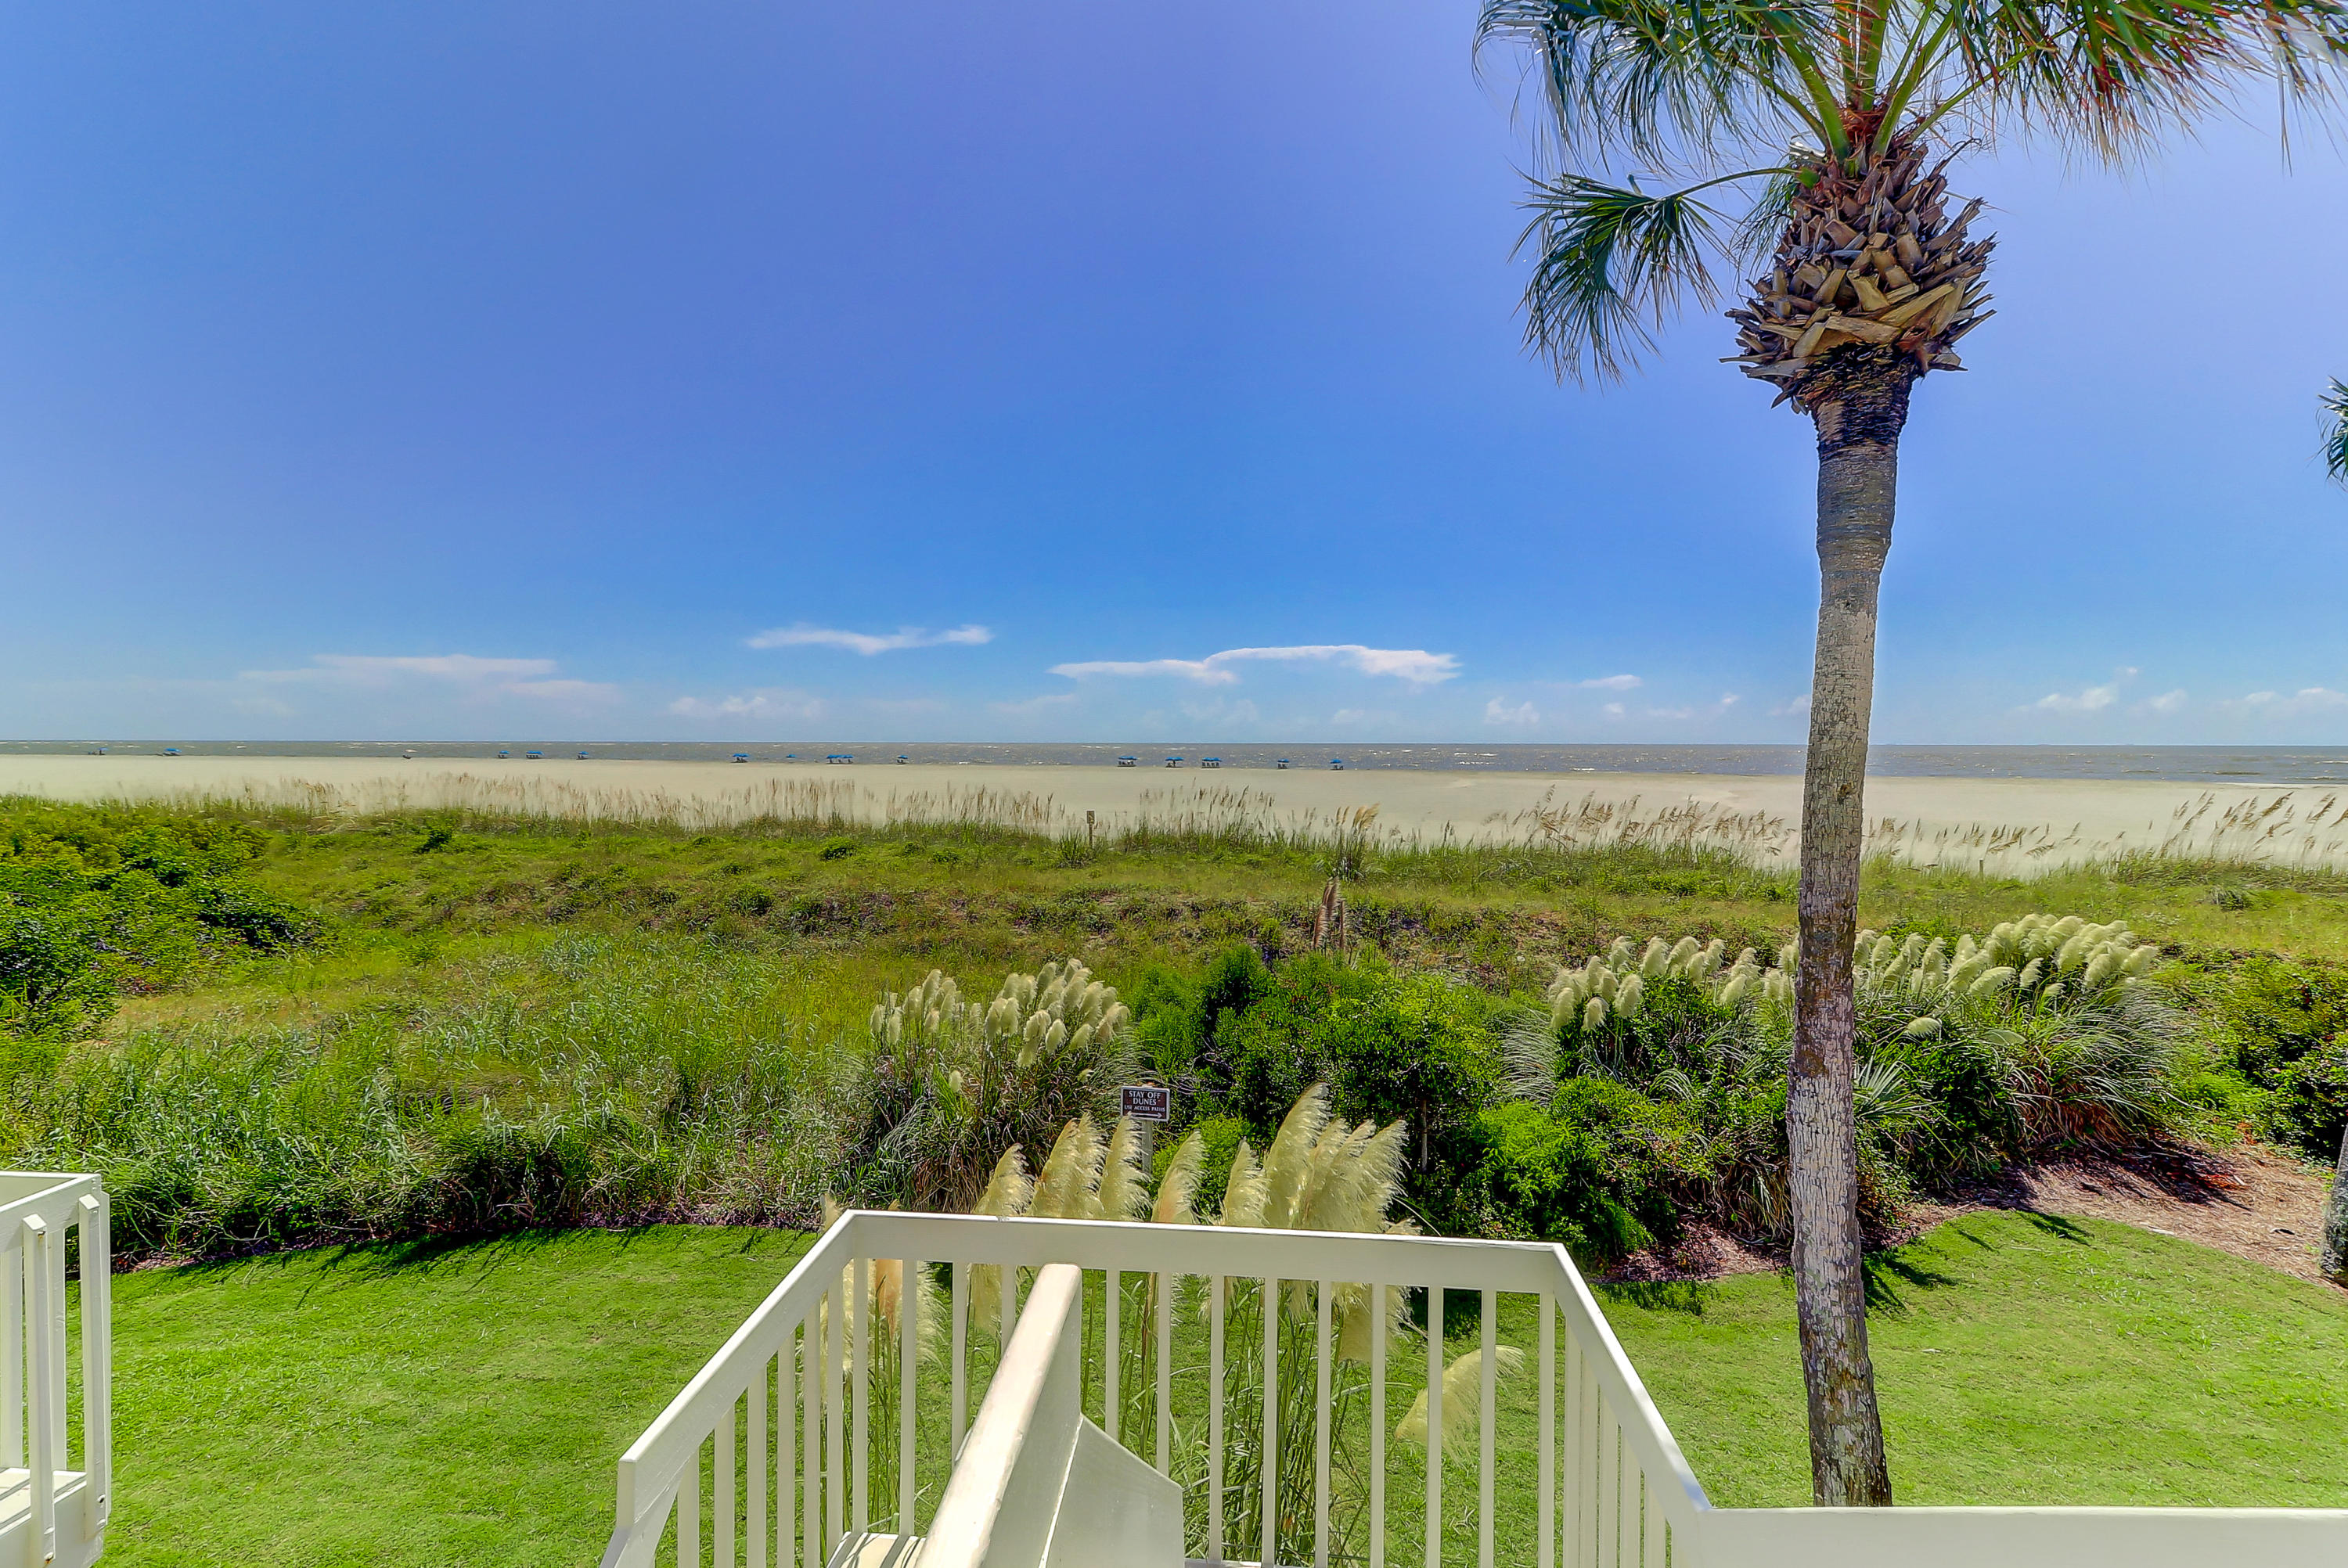 Beach Club Villas Homes For Sale - 33 Beach Club Villas, Isle of Palms, SC - 13